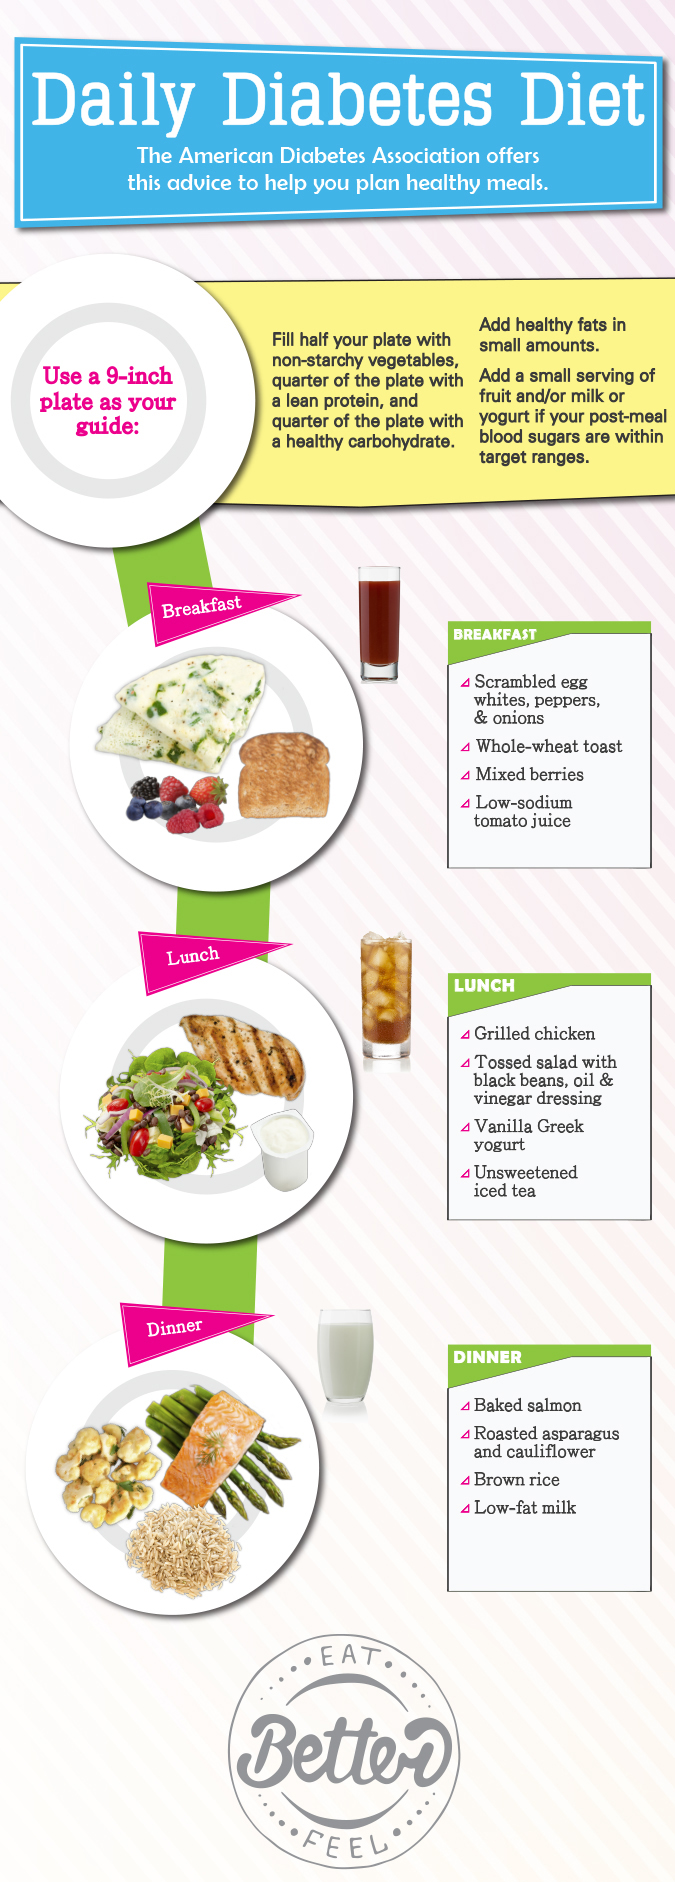 Your Daily Diabetes Diet